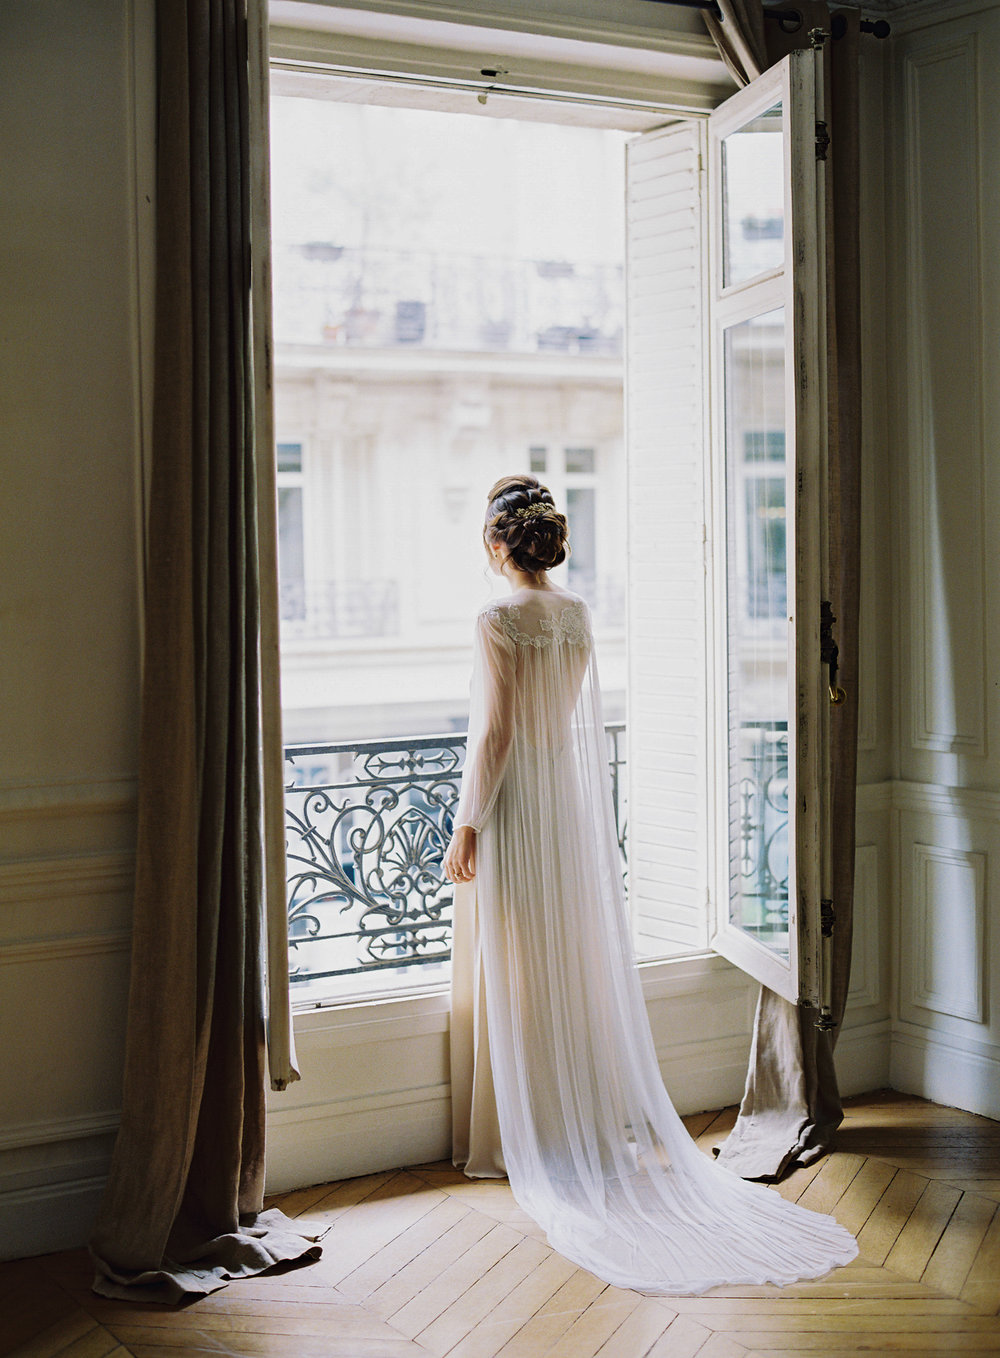 Paris Wedding-Carrie King photographer-1.jpg